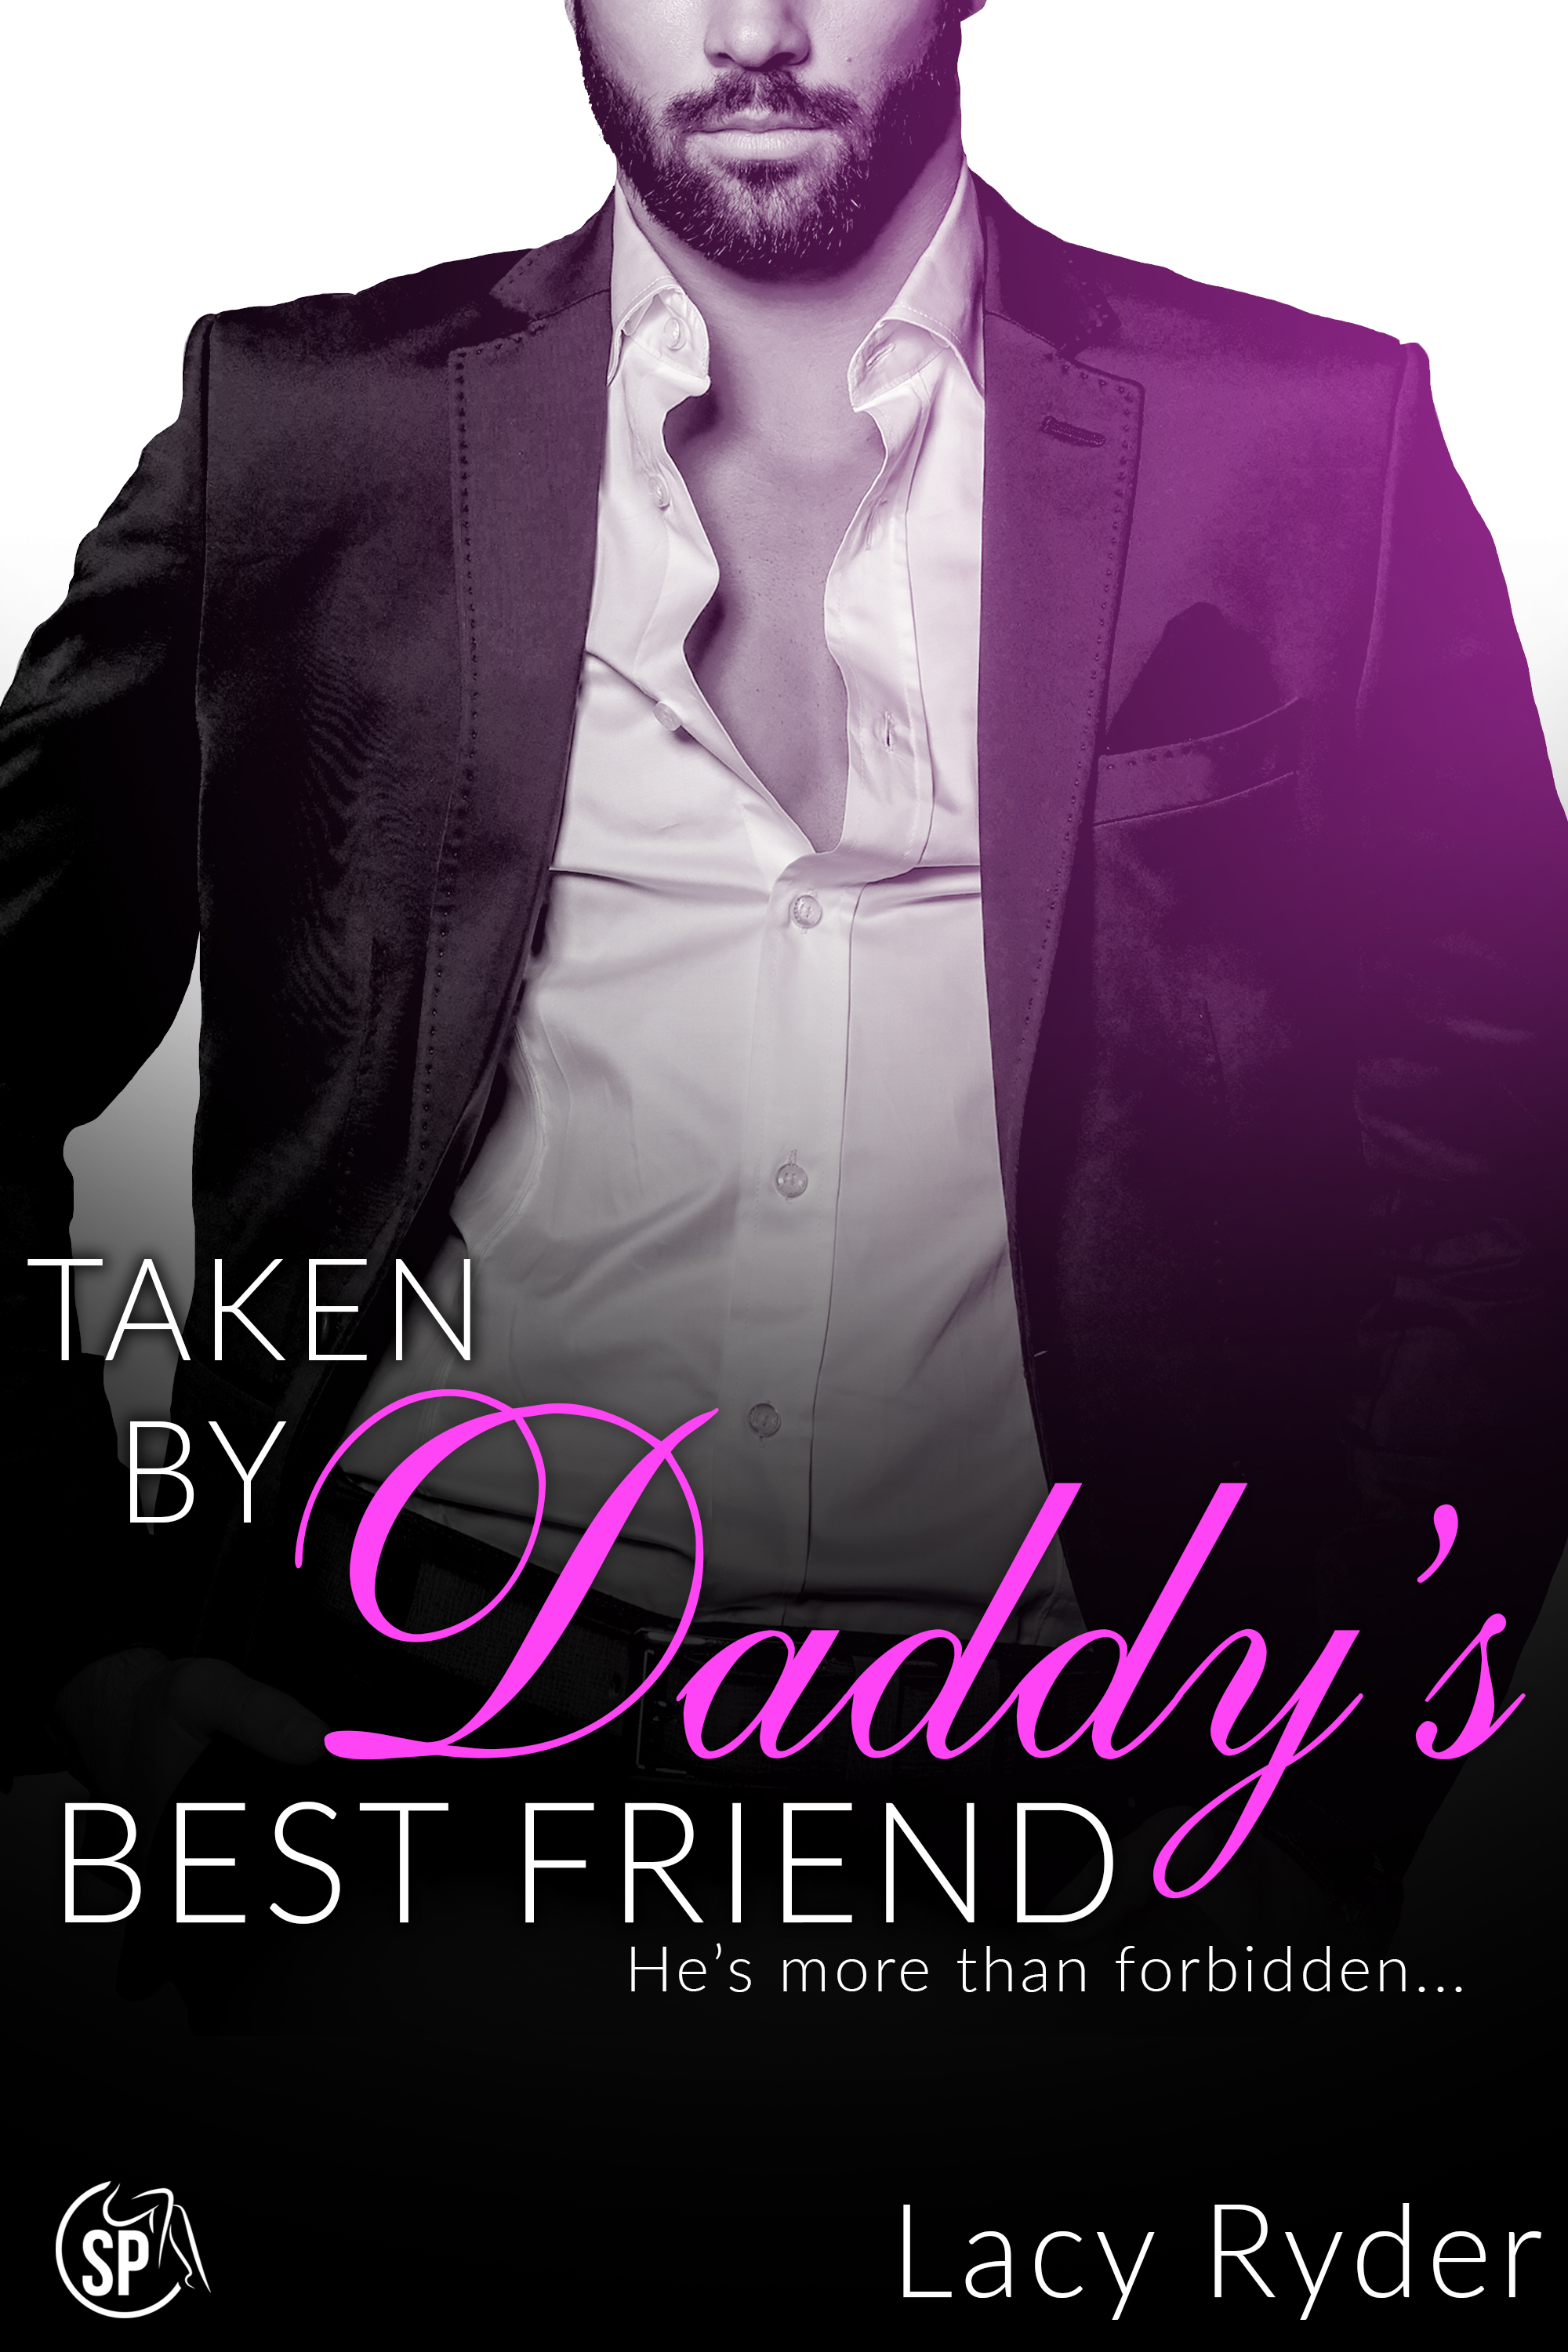 Smashwords – Taken by Daddy's Best Friend: He's more than forbidden